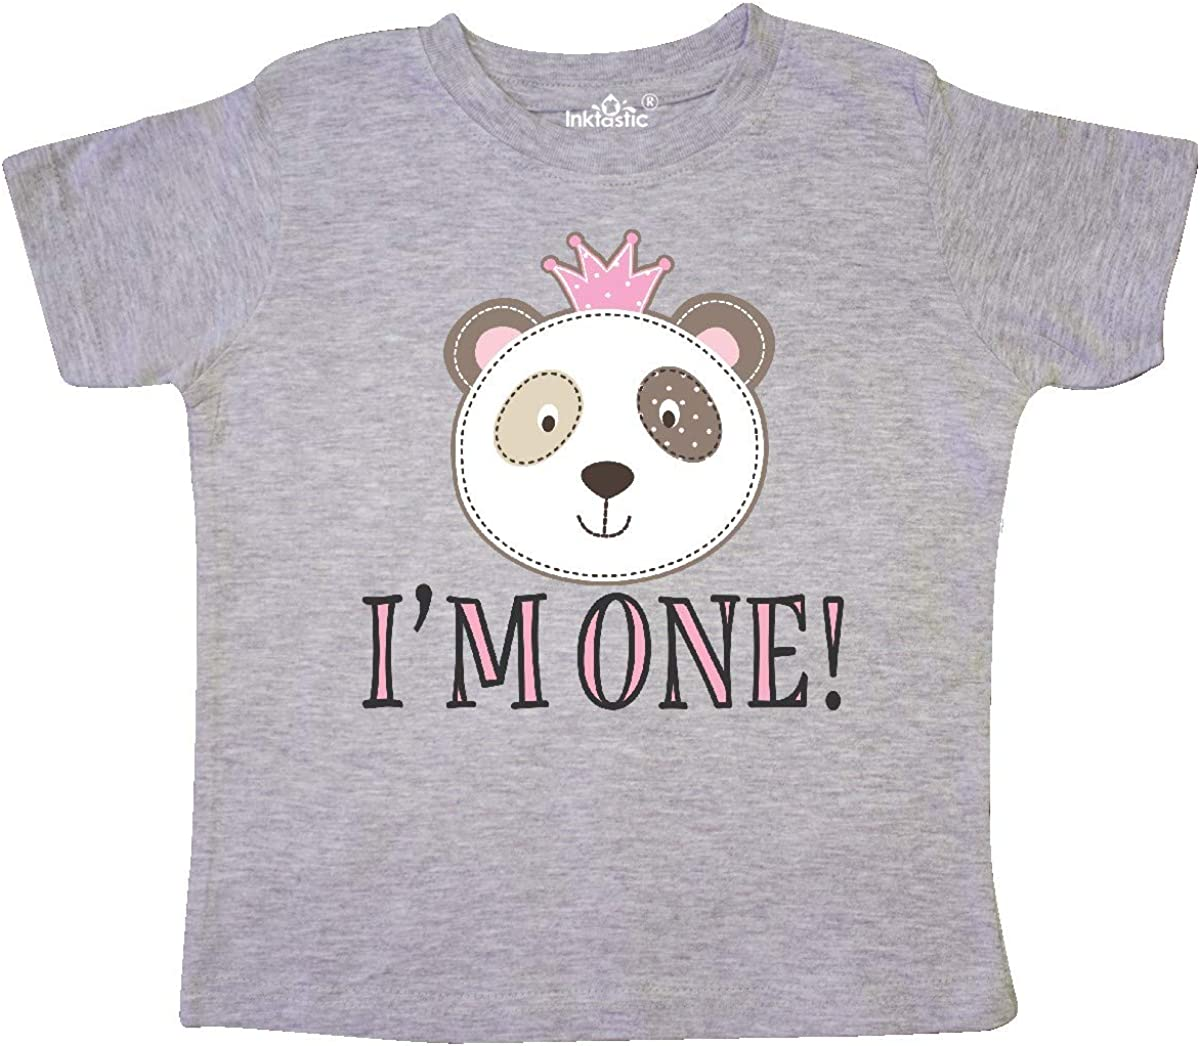 inktastic First Birthday Panda 1 Year Old Girl Toddler T-Shirt